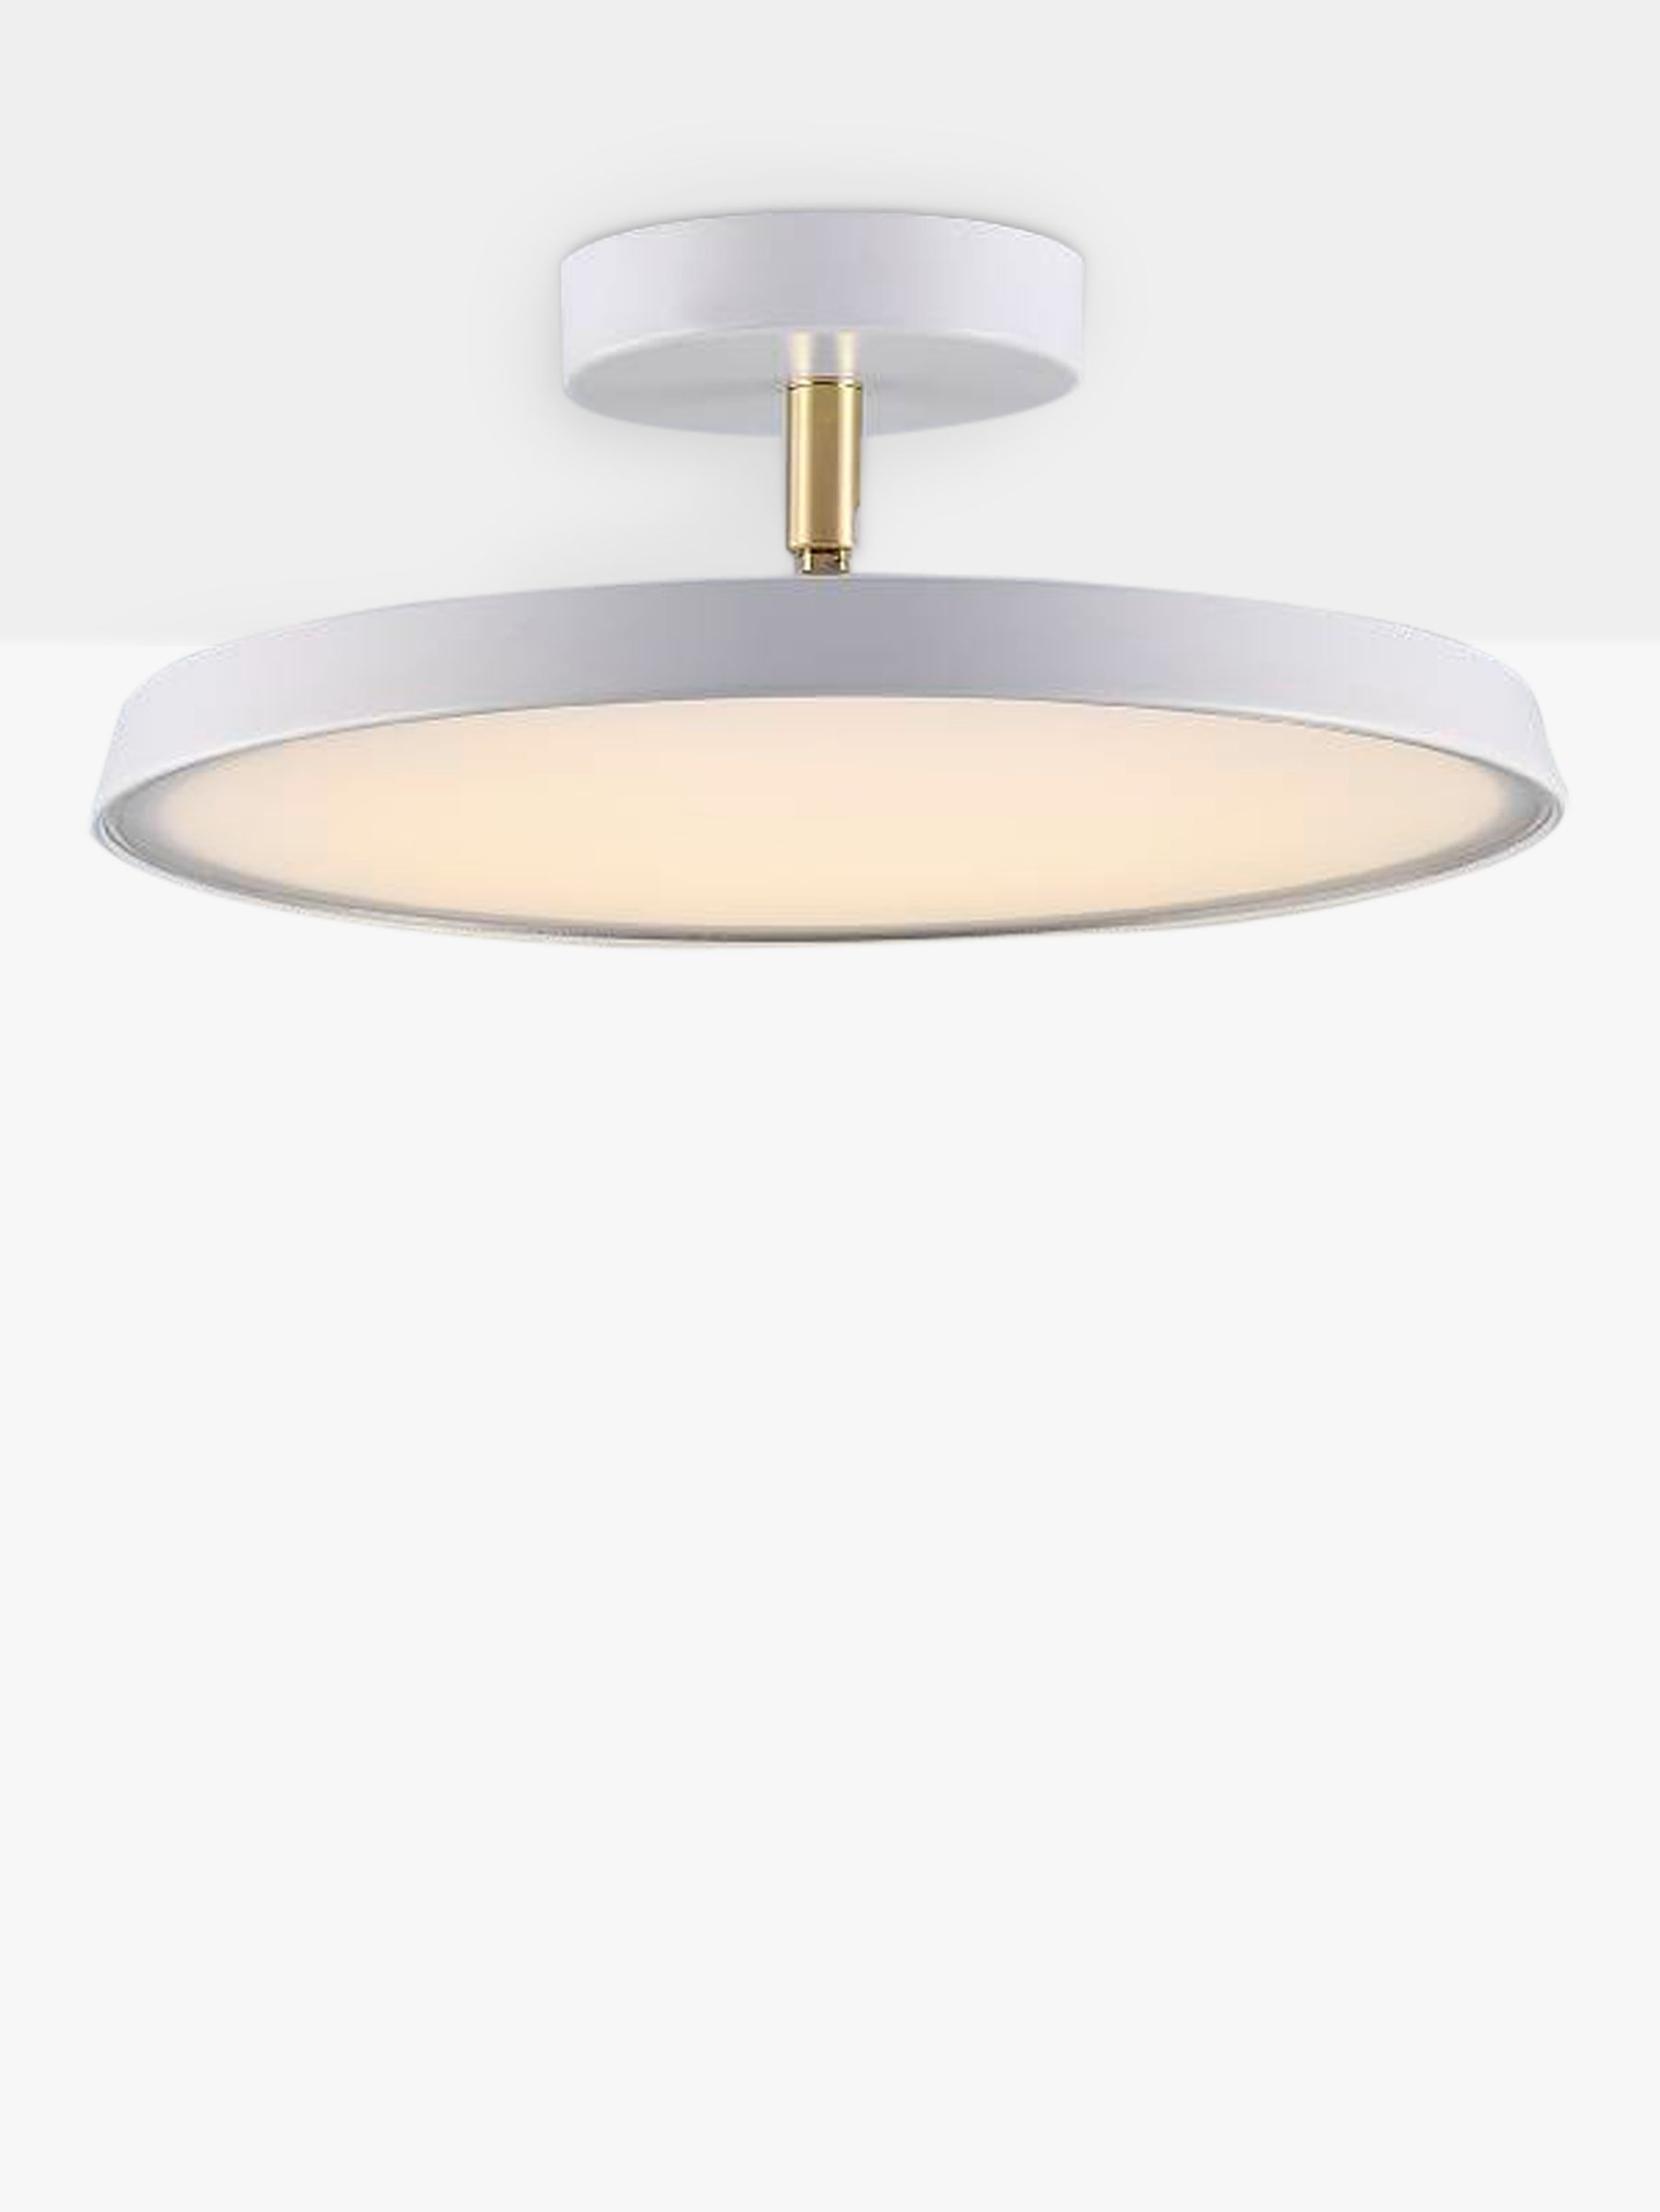 Nordlux Nordlux Design For The People Alba Pro LED Ceiling Light, White